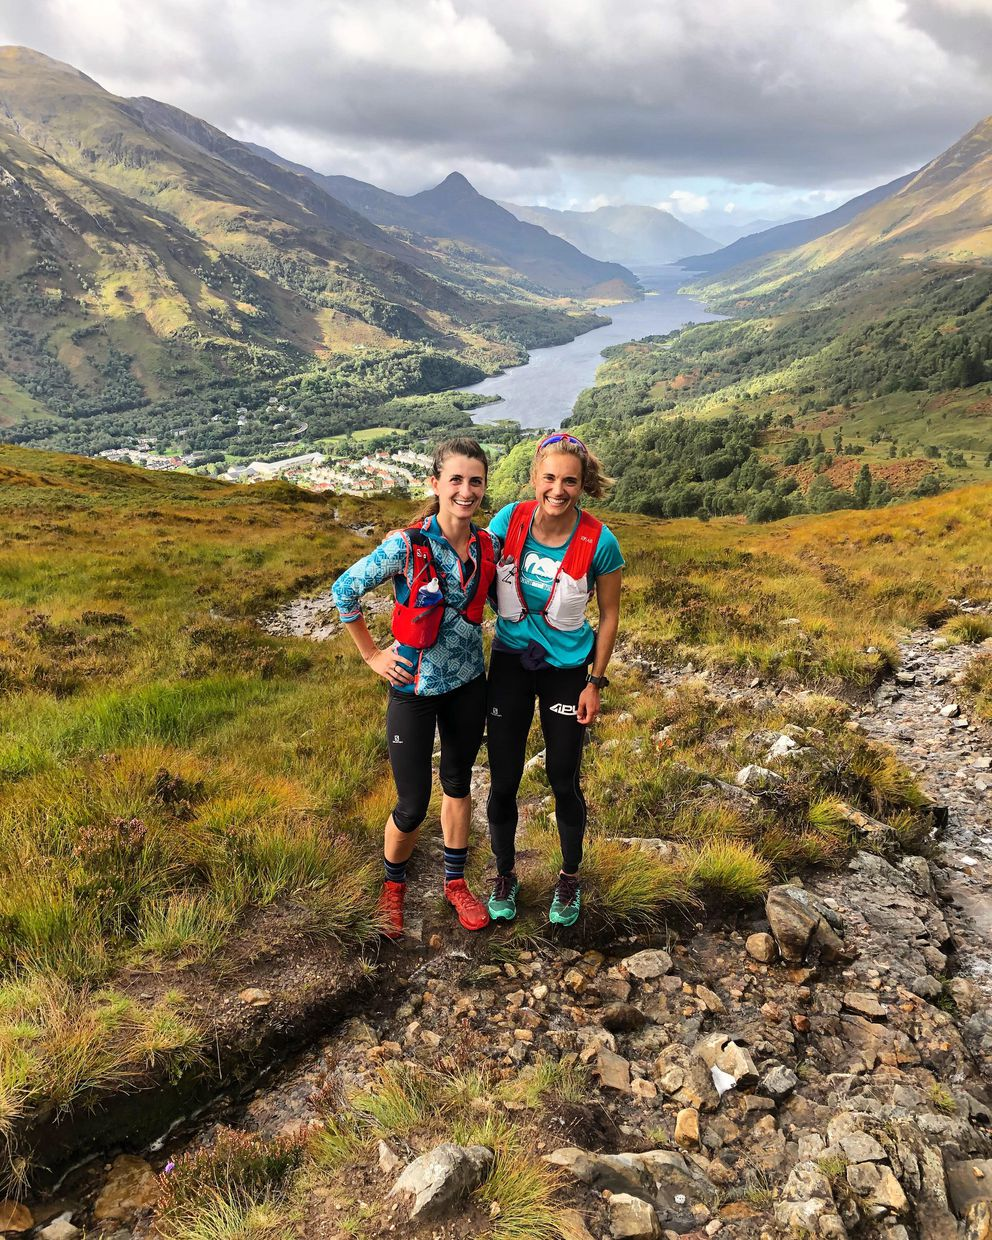 Denali Strabel, left, and Lauren Fritz hike the Scottish highlands prior to their races this week at the World Skyrunning Championships. (Photo provided by Lauren Fritz)